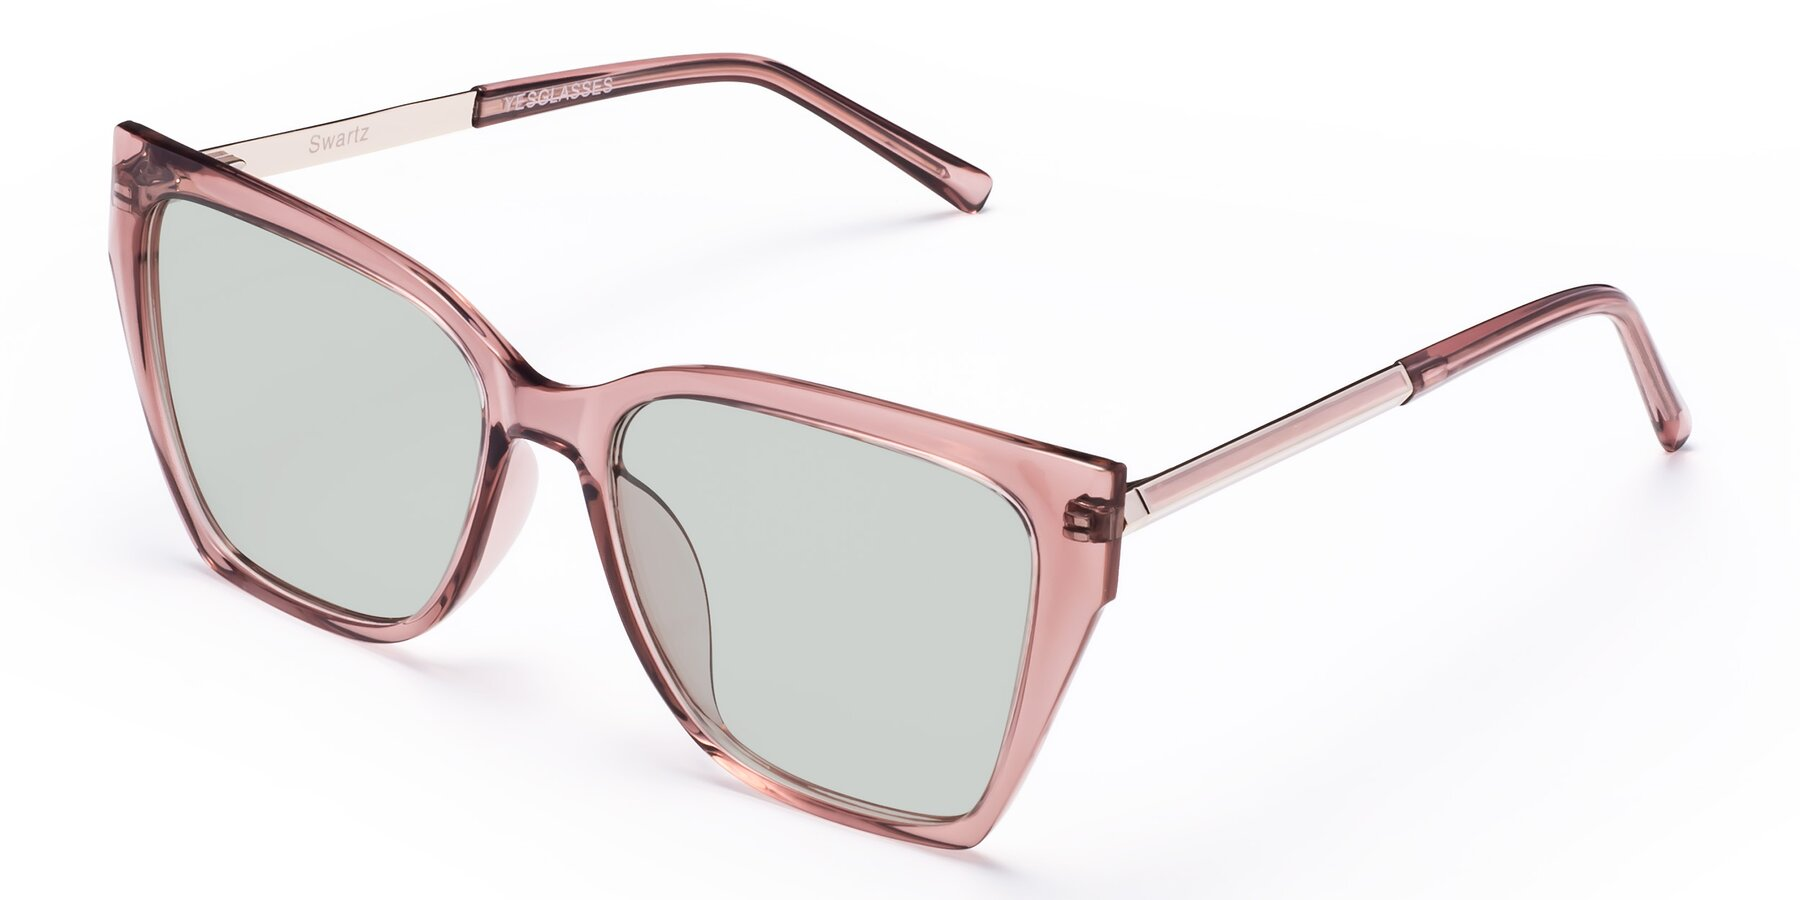 Angle of Swartz in Grape with Light Green Tinted Lenses